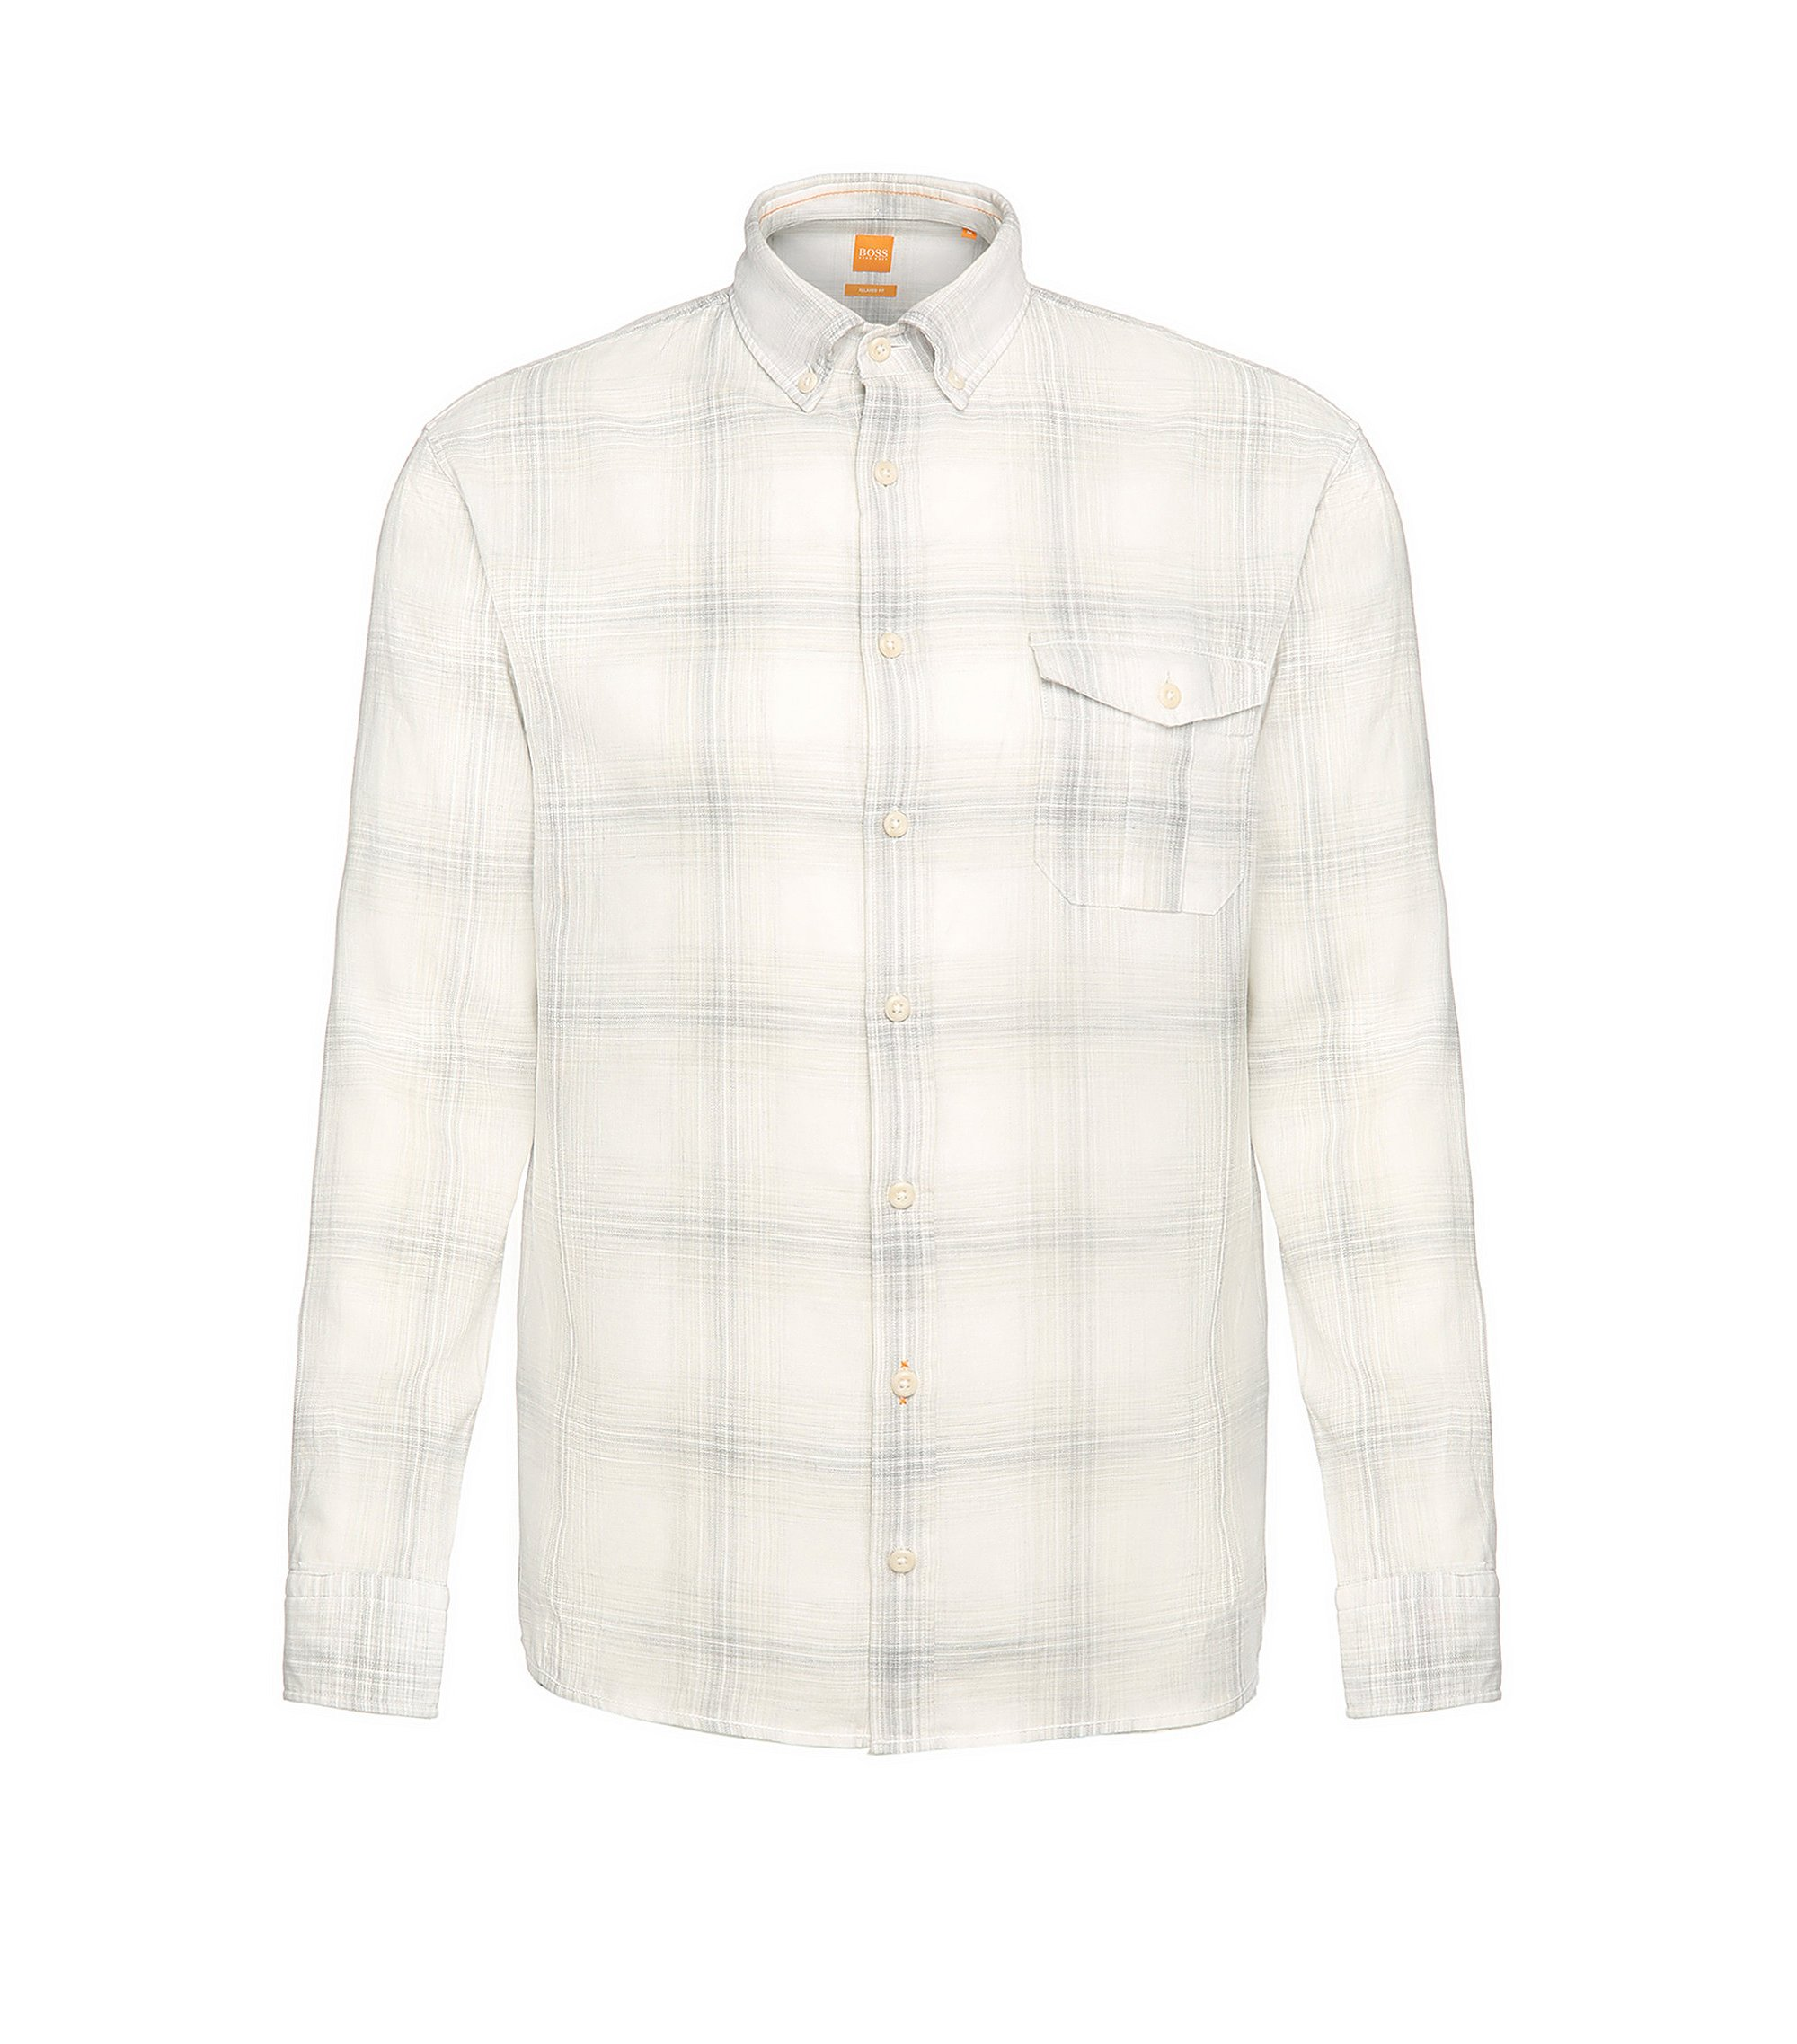 Cotton Linen Plaid Sport Shirt, Regular Fit | Elabor, Light Grey